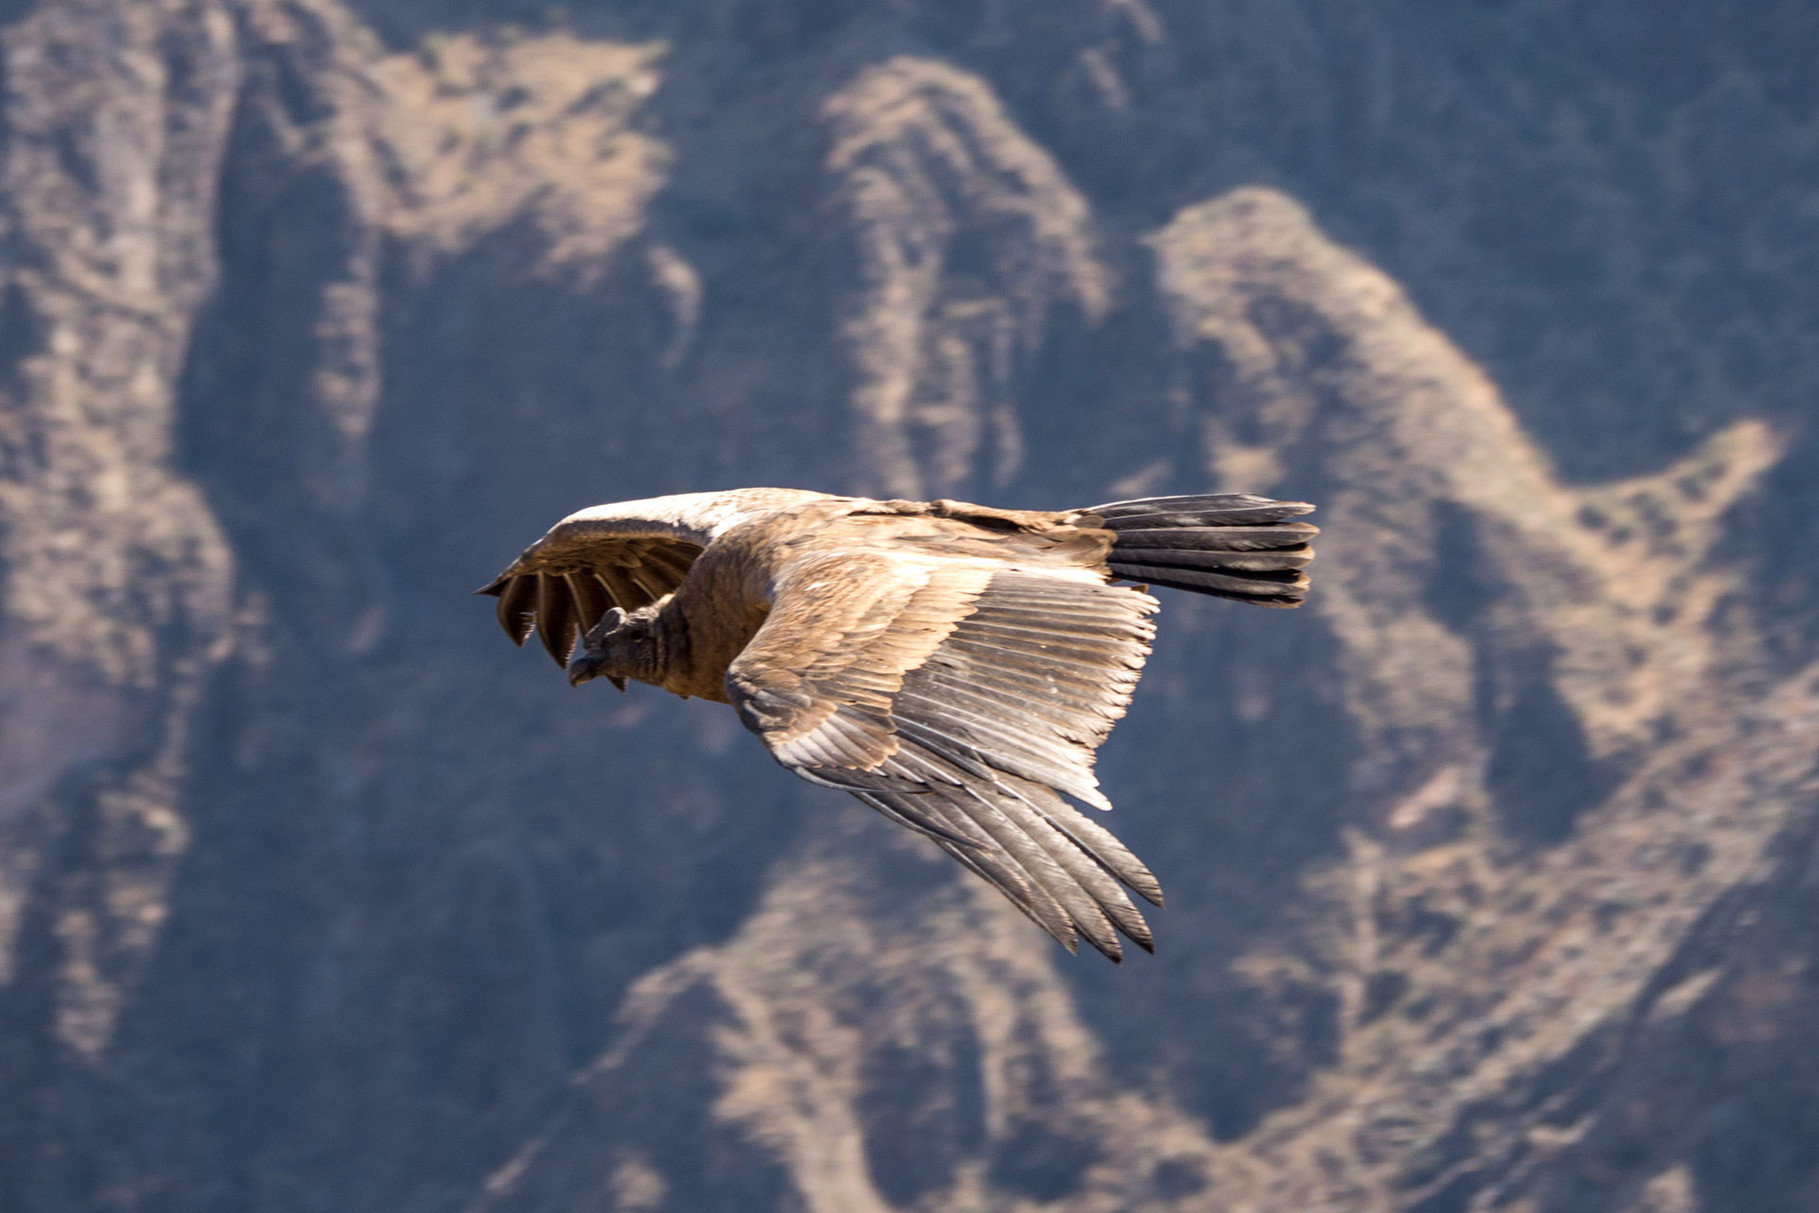 Majestetic Condors at Colca canyon, Mirador Cruz del Condor [Peru, 2014]